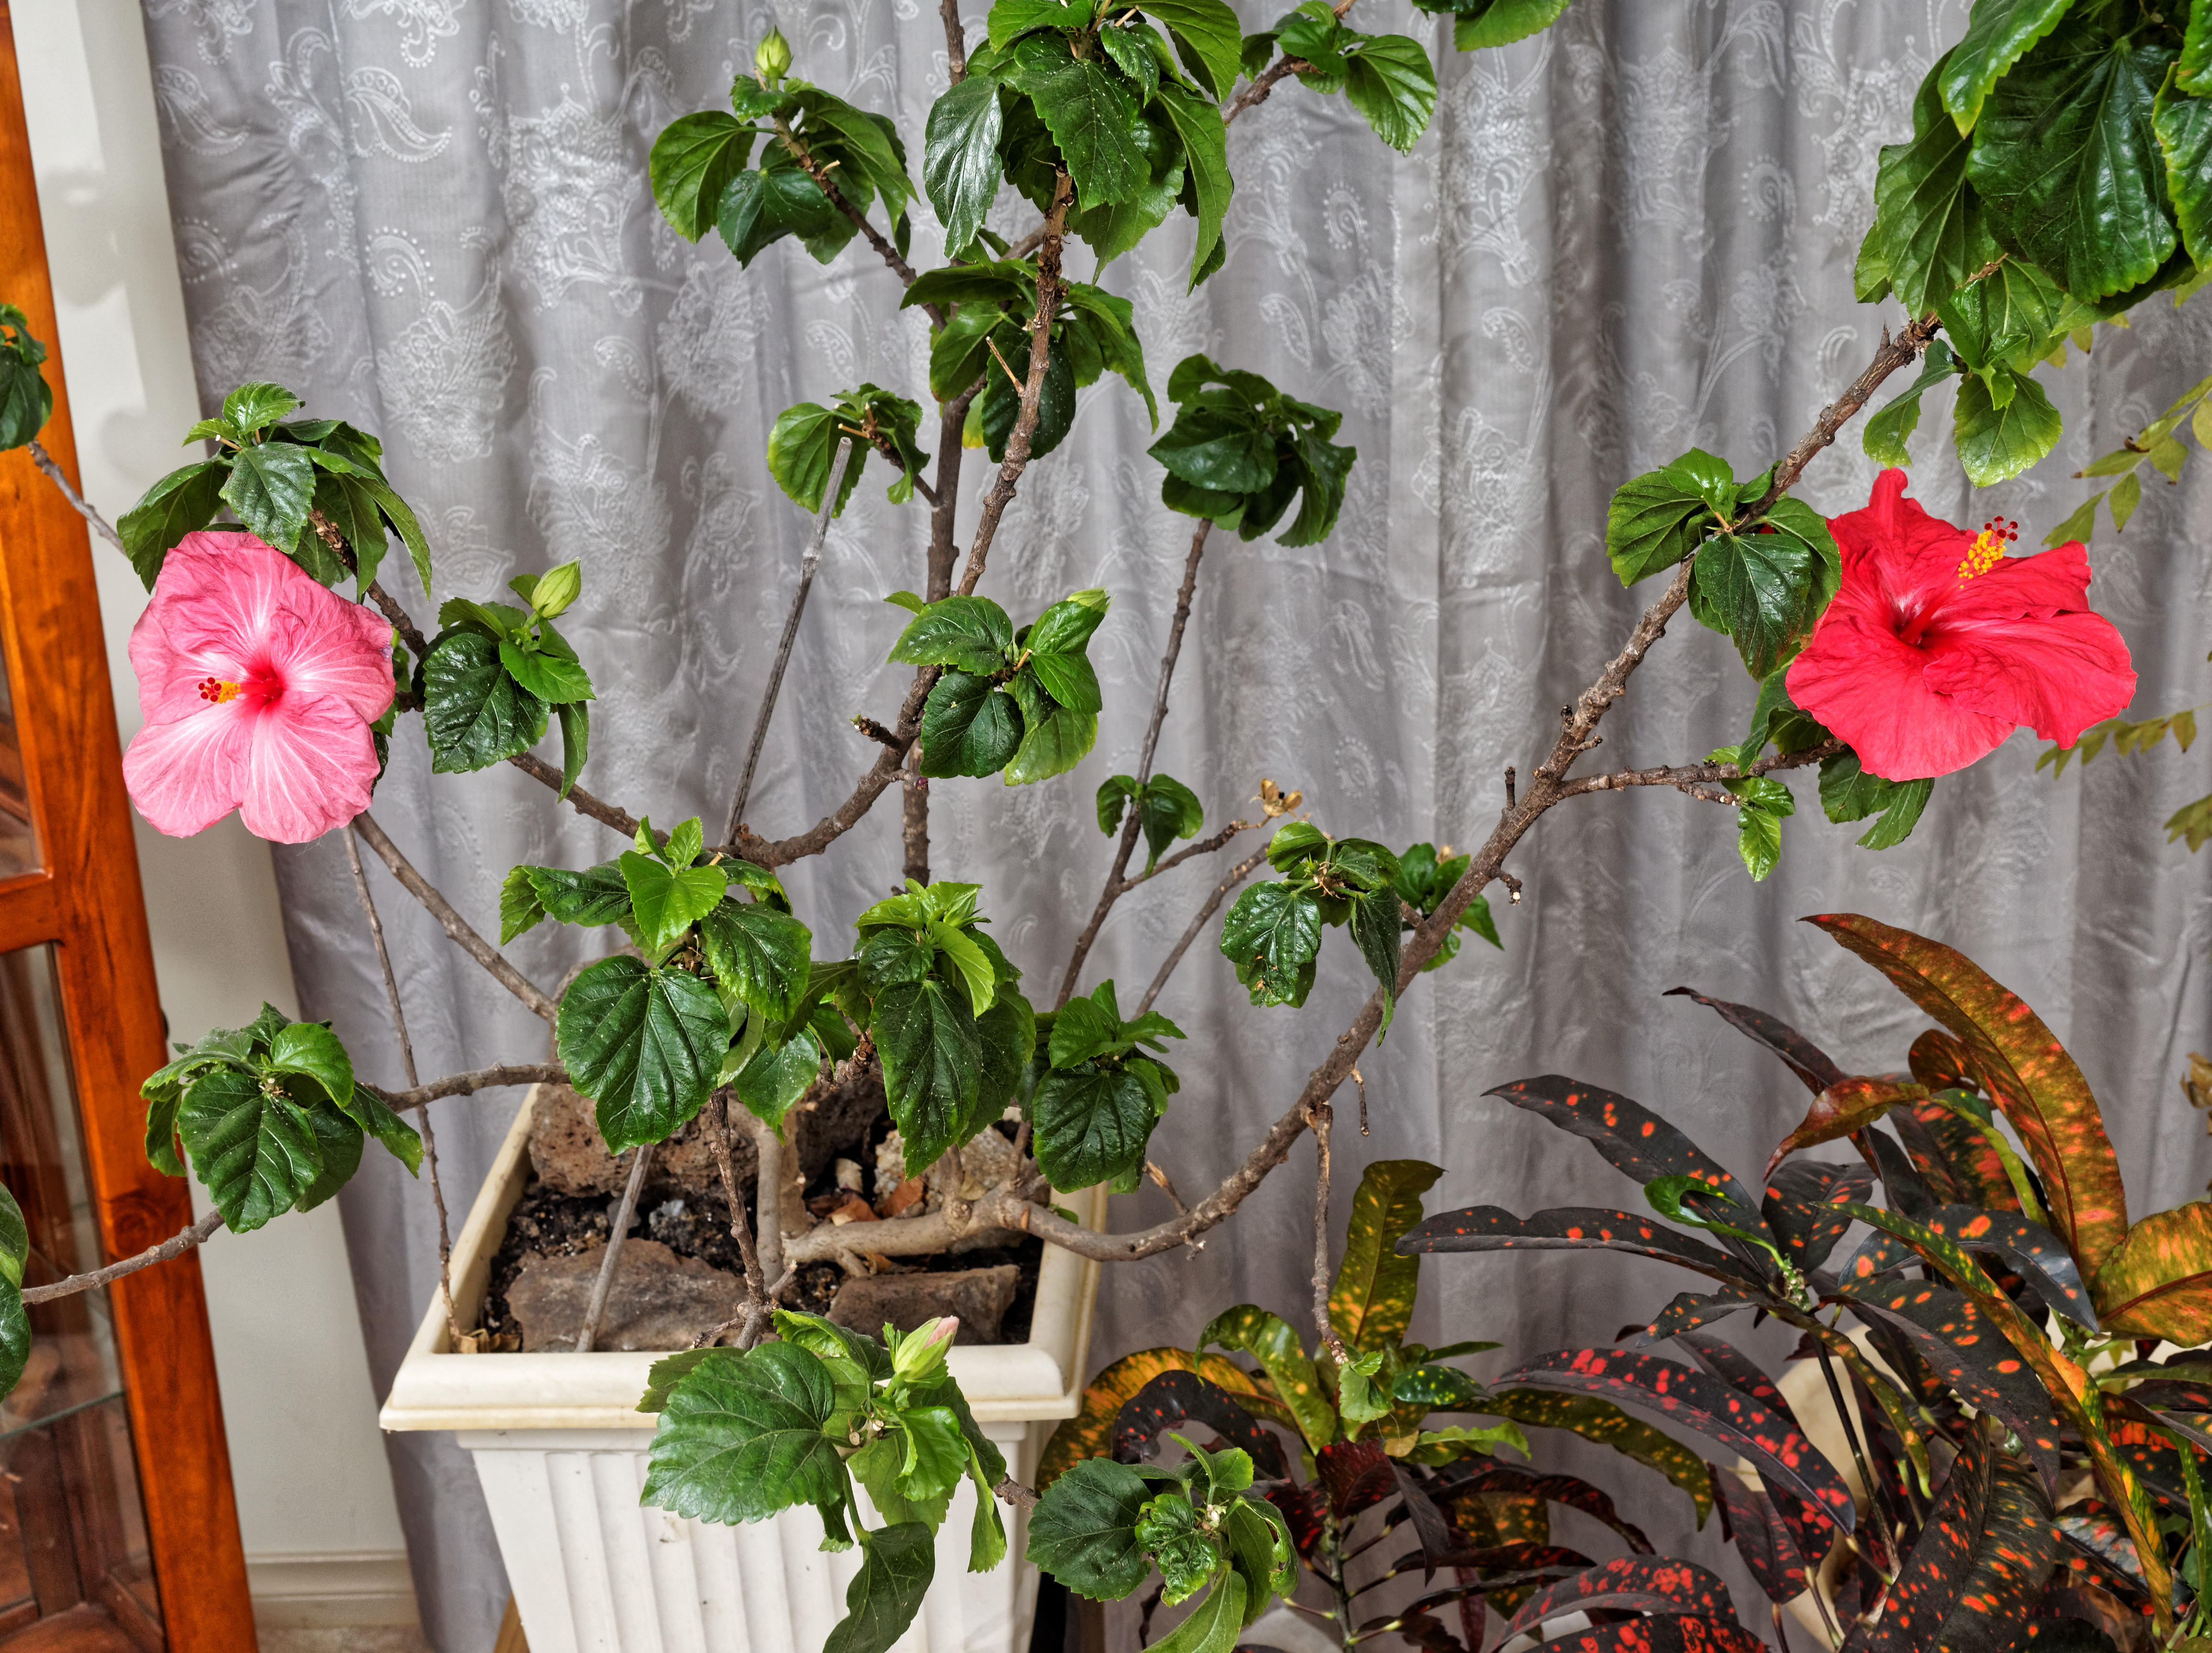 This should be Hibiscus-7.jpeg.  Is it missing?